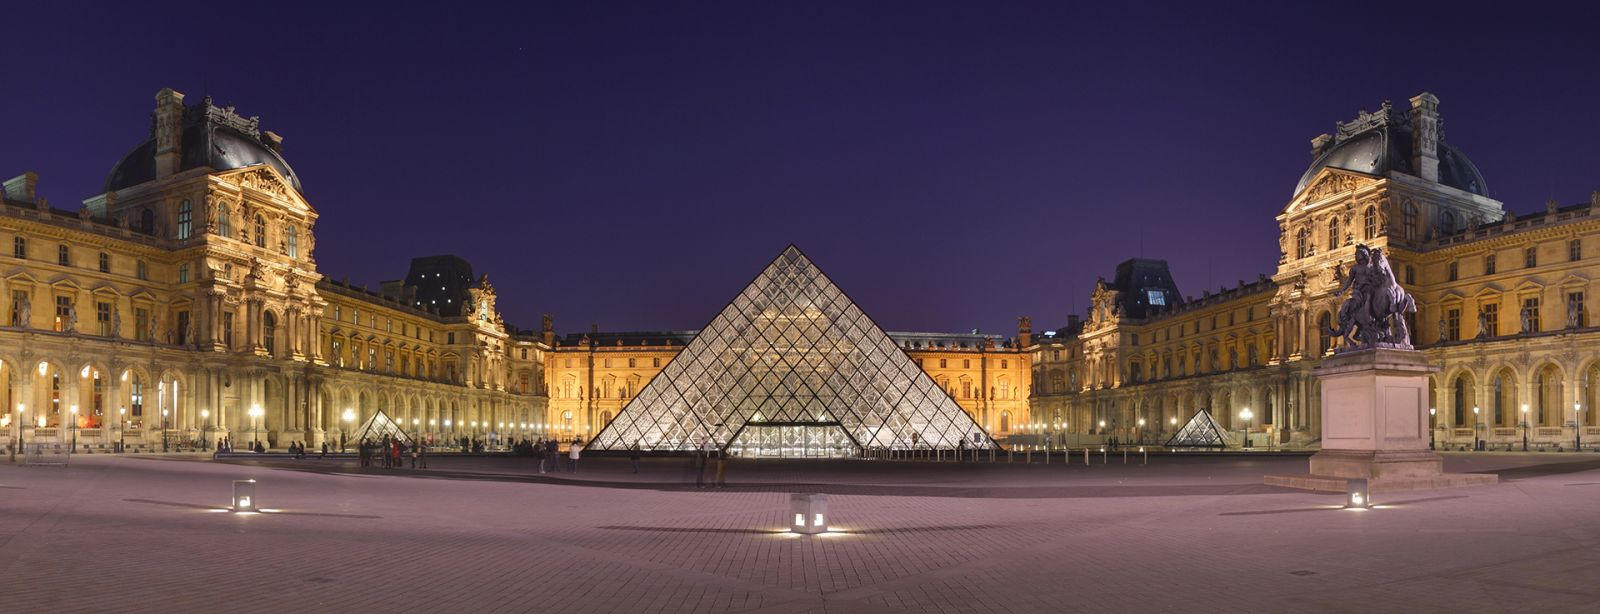 549/Photos/Paris/Louvre_Museum_Wikimedia_Commons-optimisee.jpg